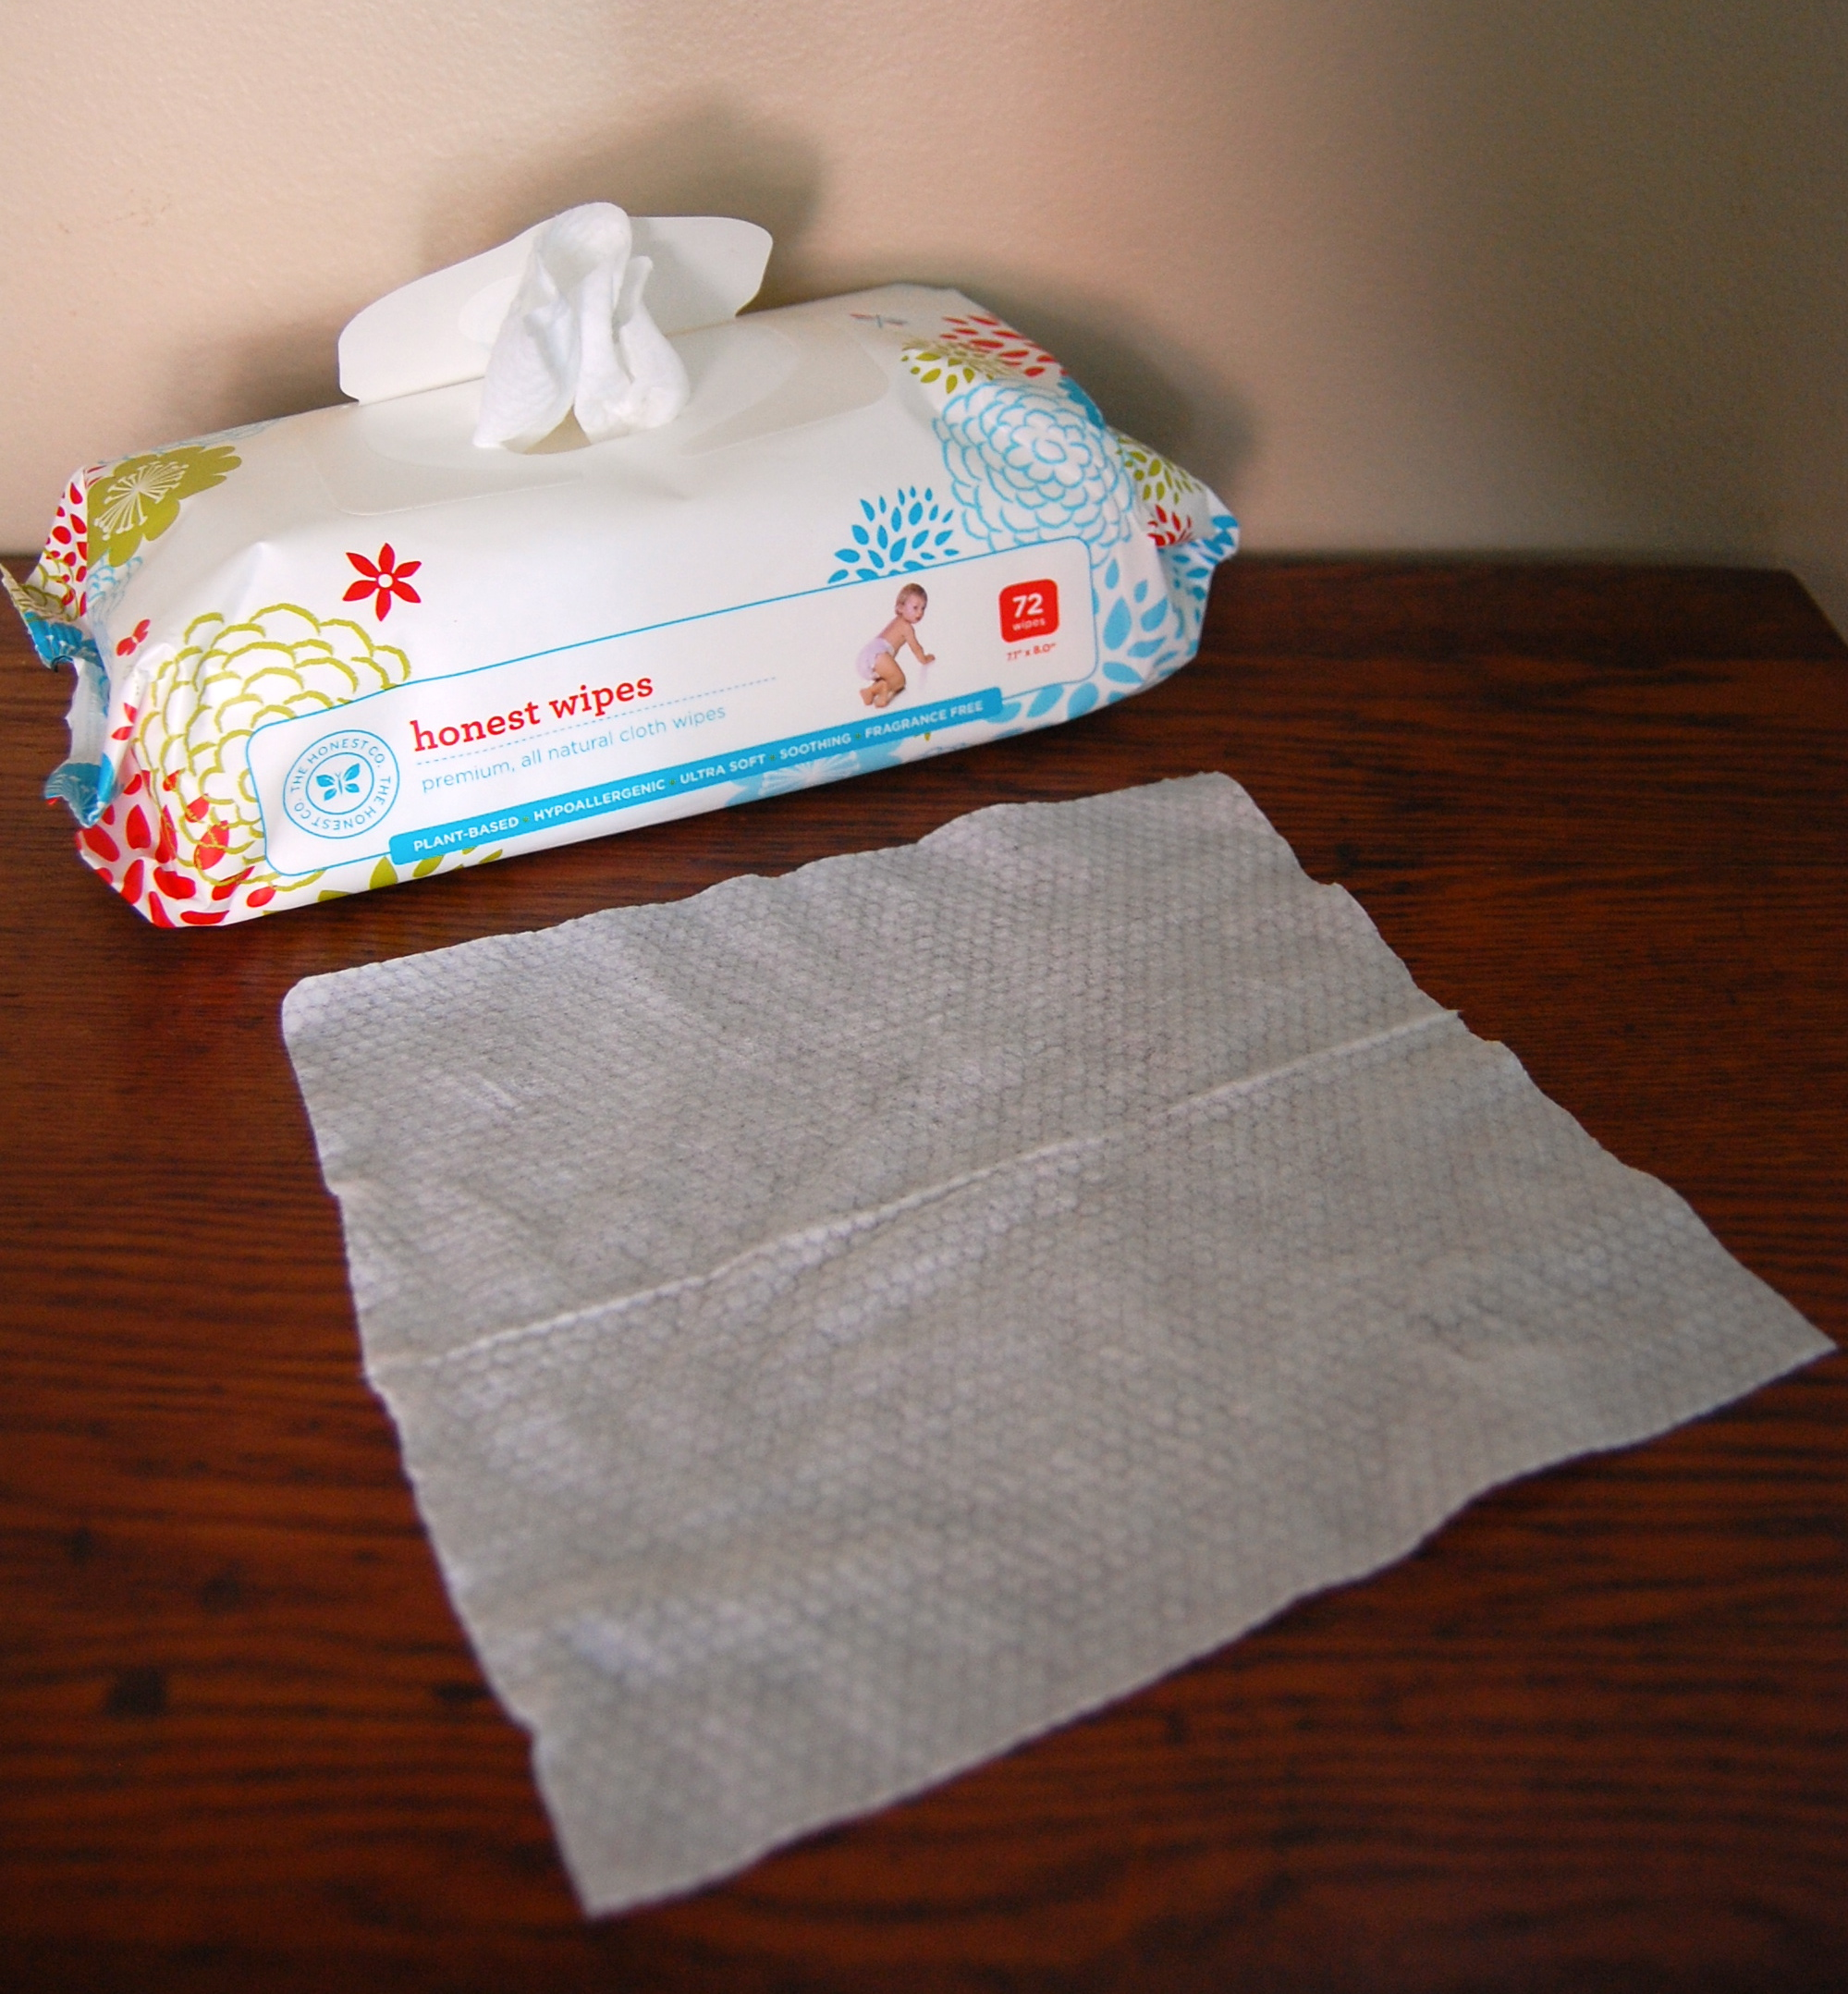 The Honest pany New Interlocking Wipes Review